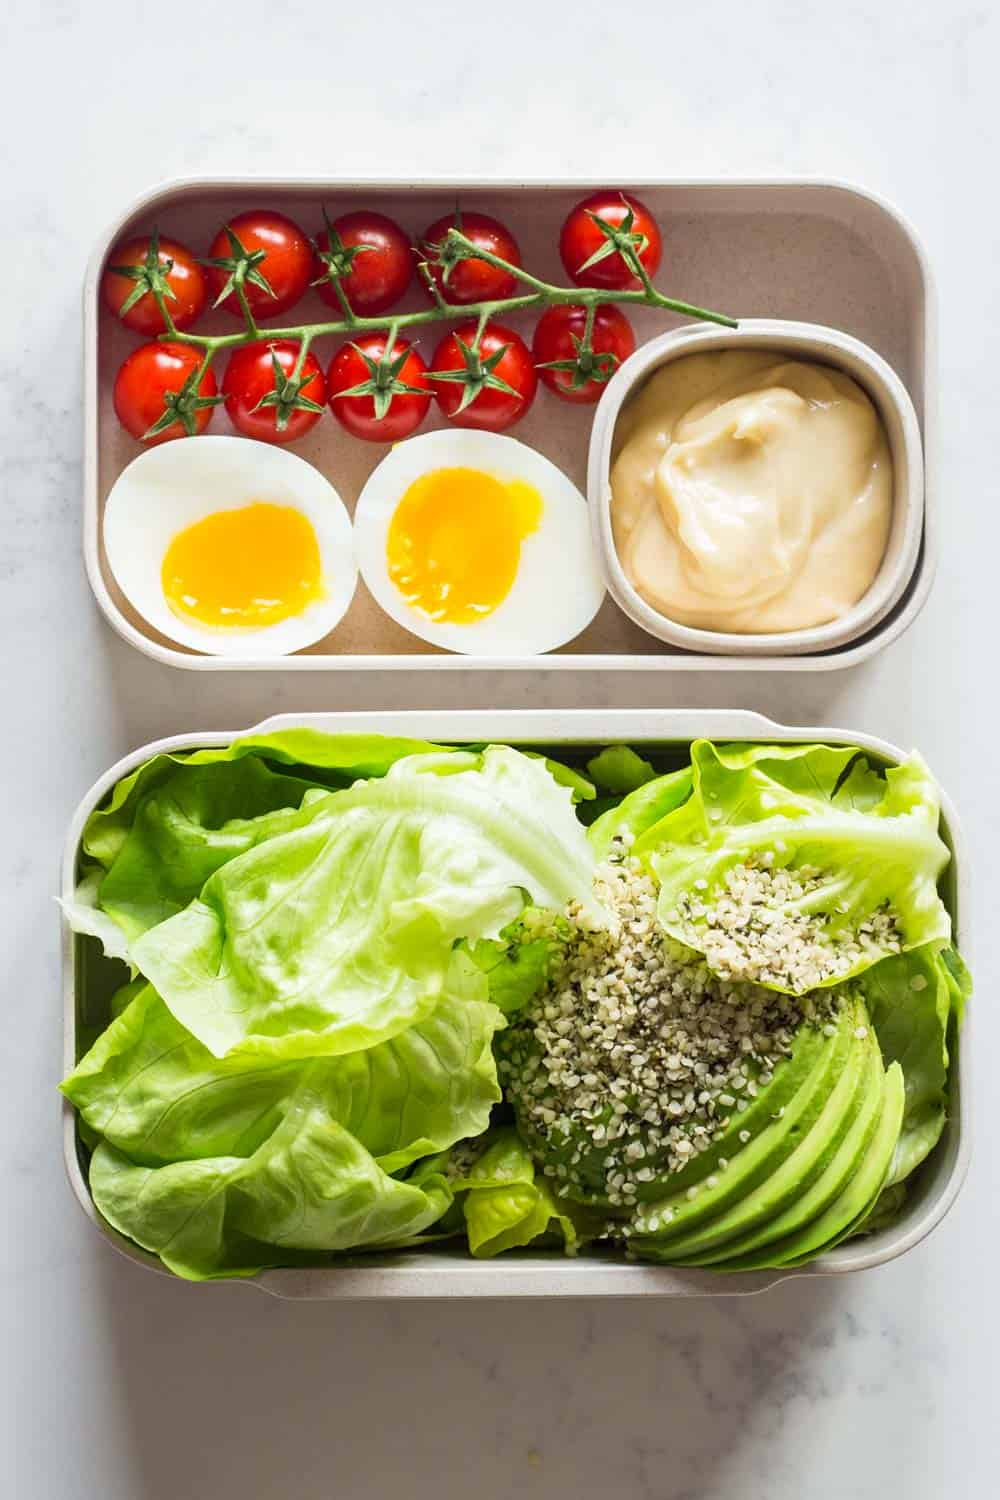 A healthy keto dinner for a complete keto diet plan- butter lettuce, avocado, hemp seed salad with mayonnaise, a soft boiled egg and cherry tomatoes.